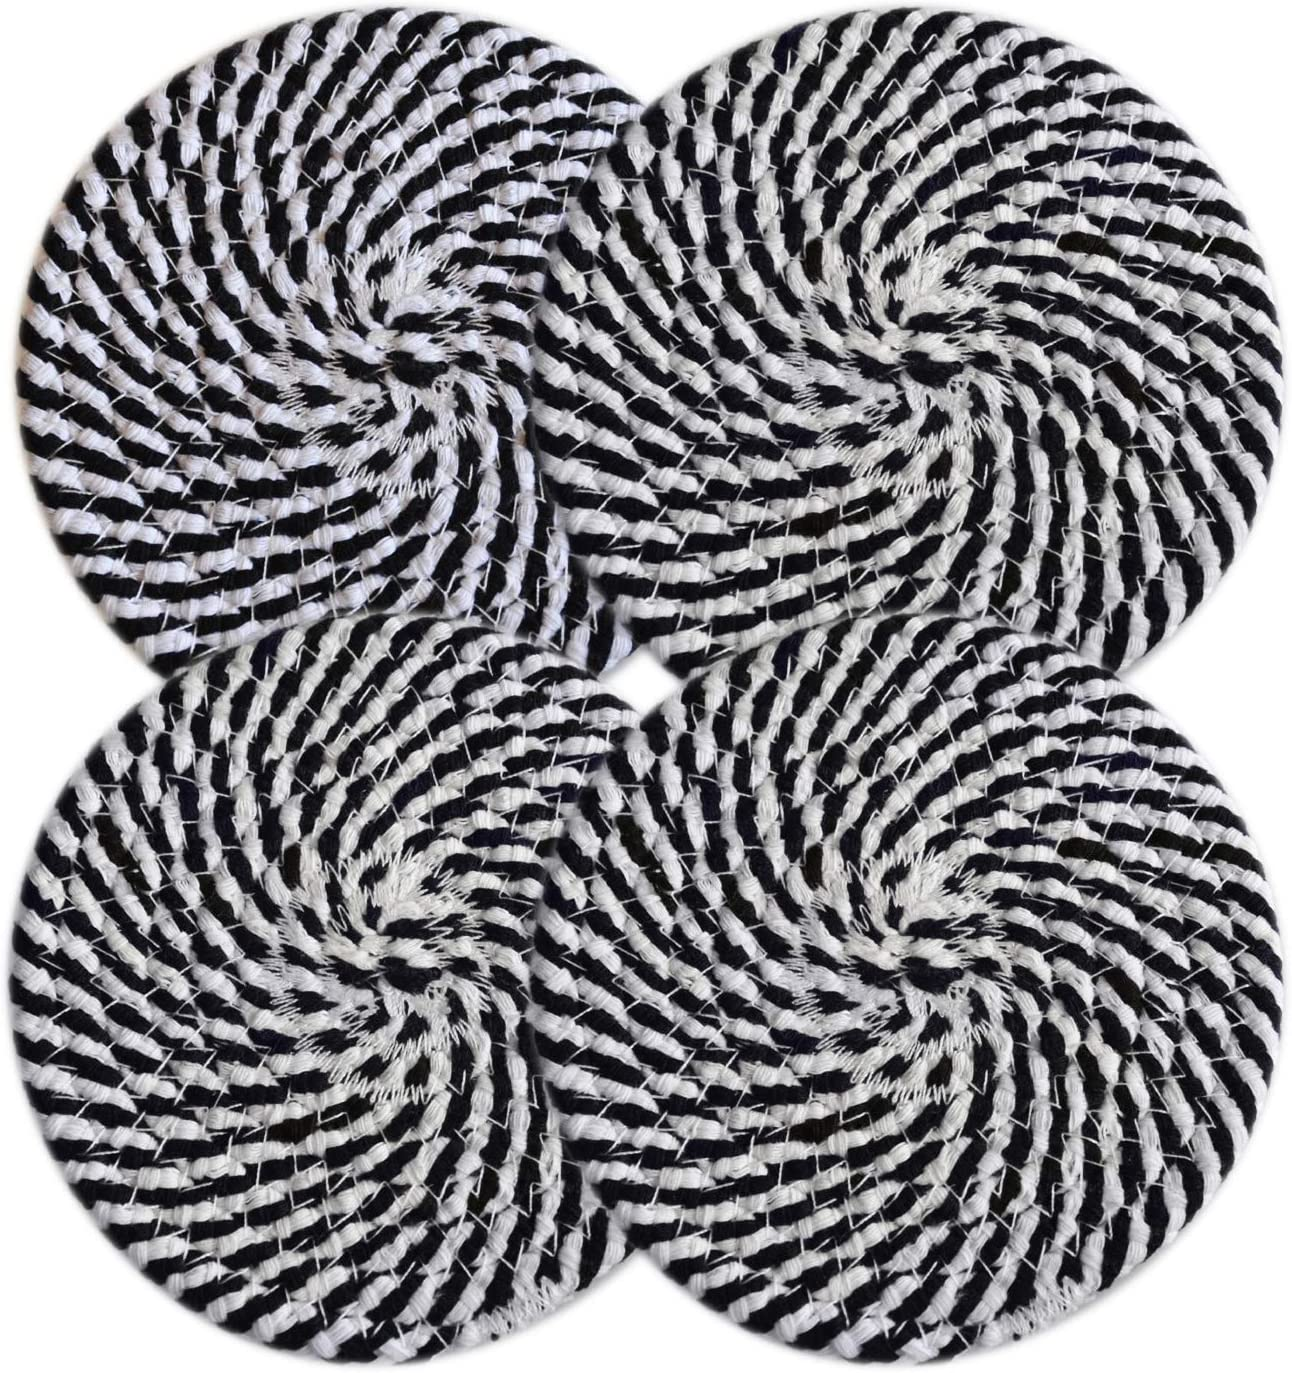 100% Pure Rope Thread Weave Hot Pot Holders Set (Set of 4), Hot Mats Thread Weave Round Drink Coasters Set of 4 by 4.3 Inches, Cup Coasters for Drink Home Kitchen